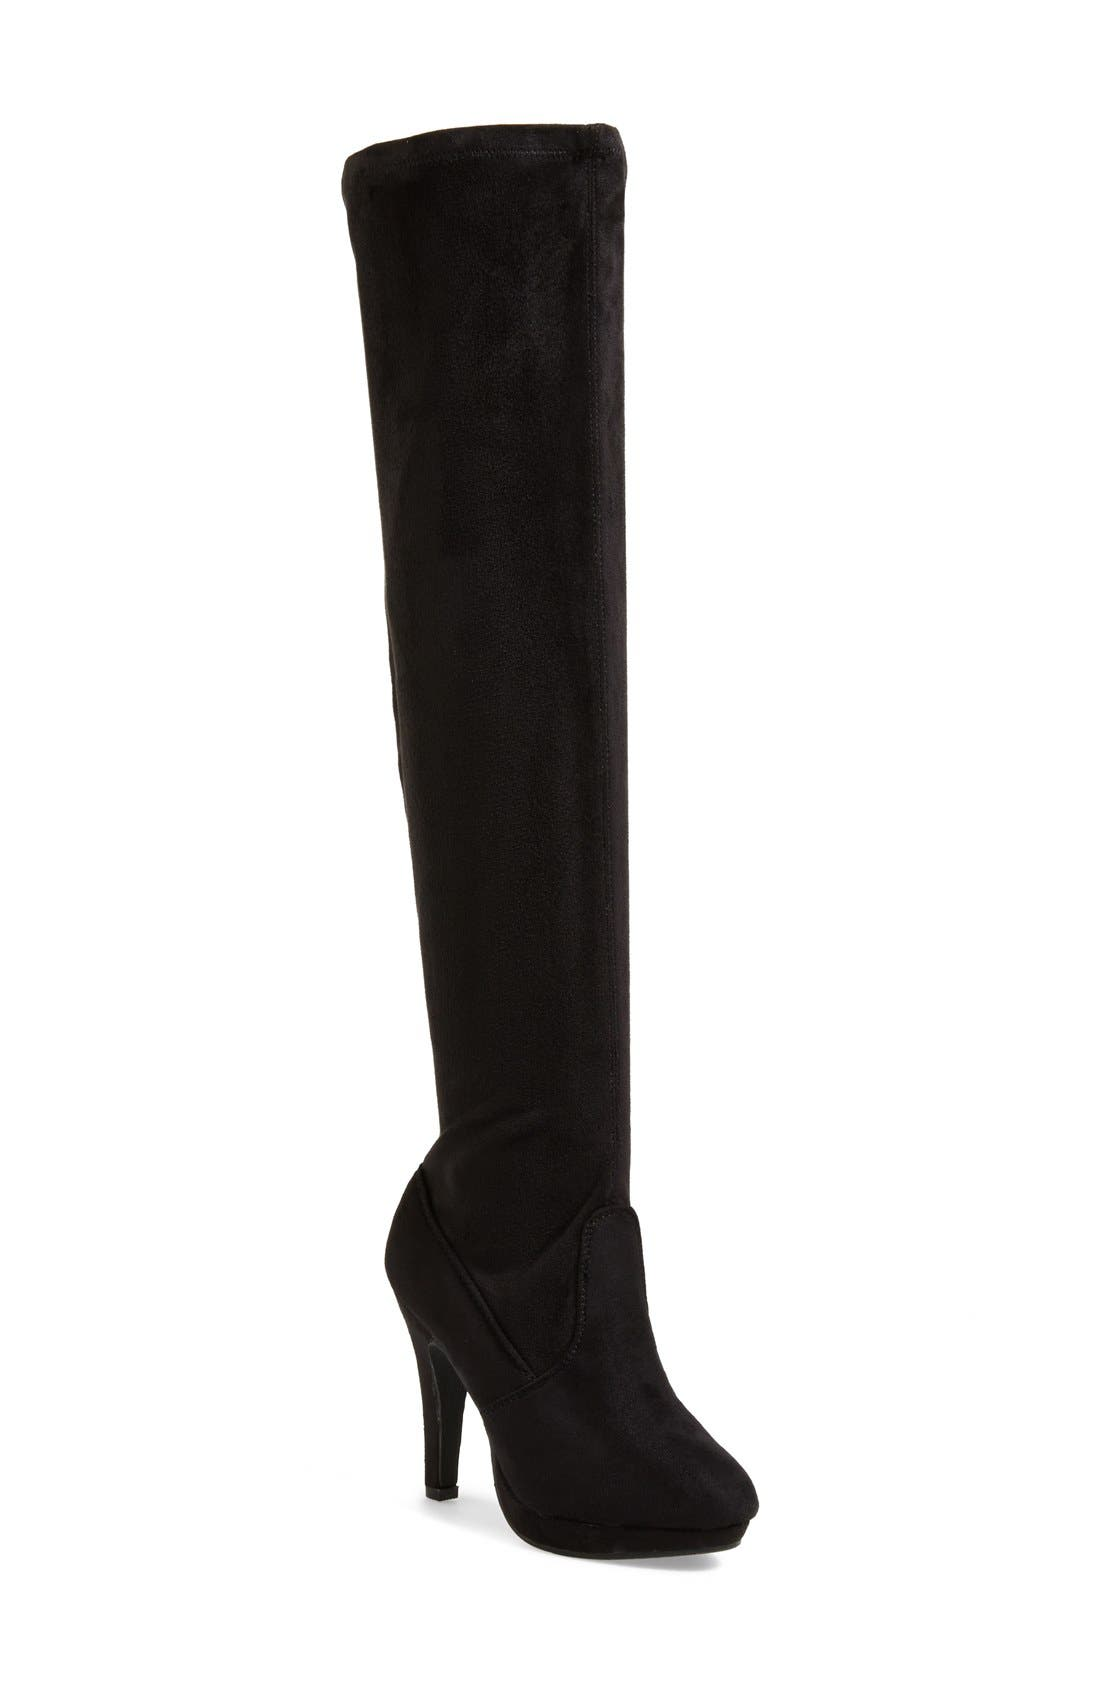 Alternate Image 1 Selected - REPORT 'Nadya' Over The Knee Boot (Women)